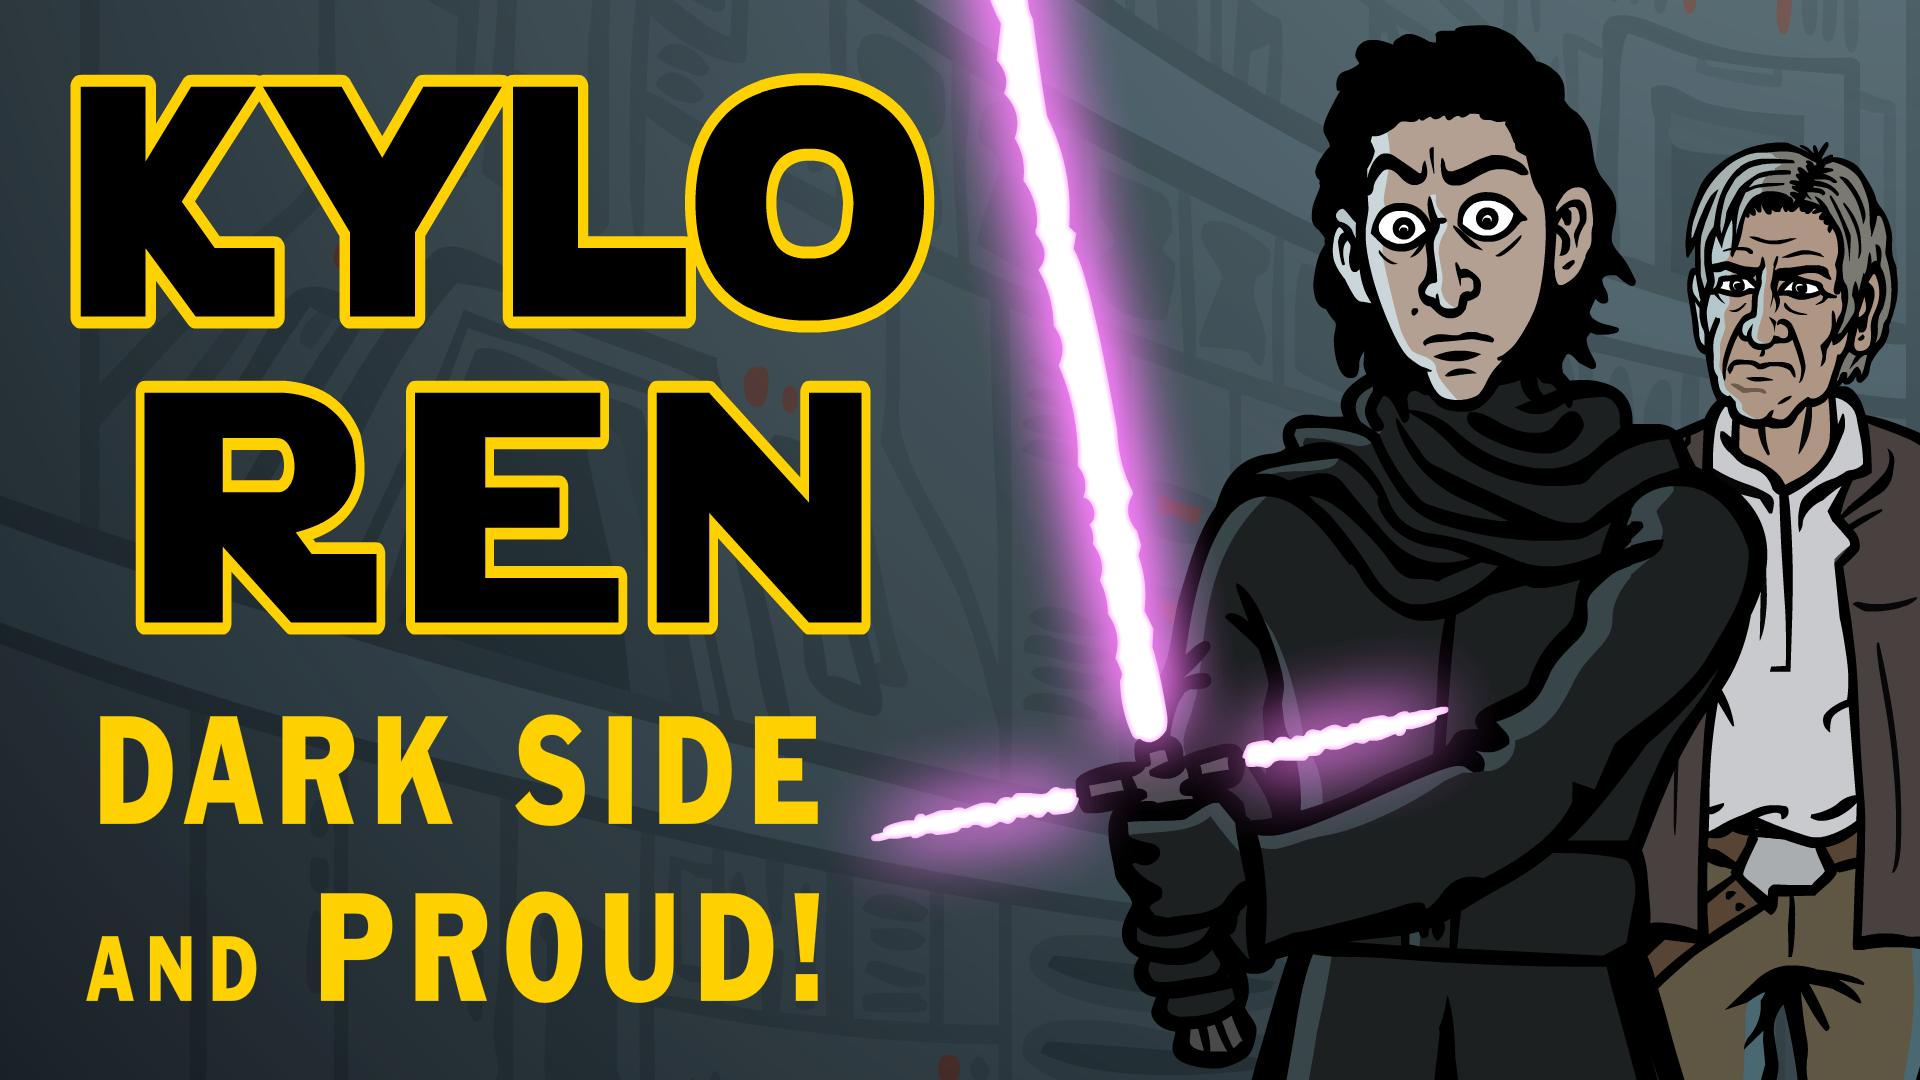 Kylo Ren: Dark Side and Proud!